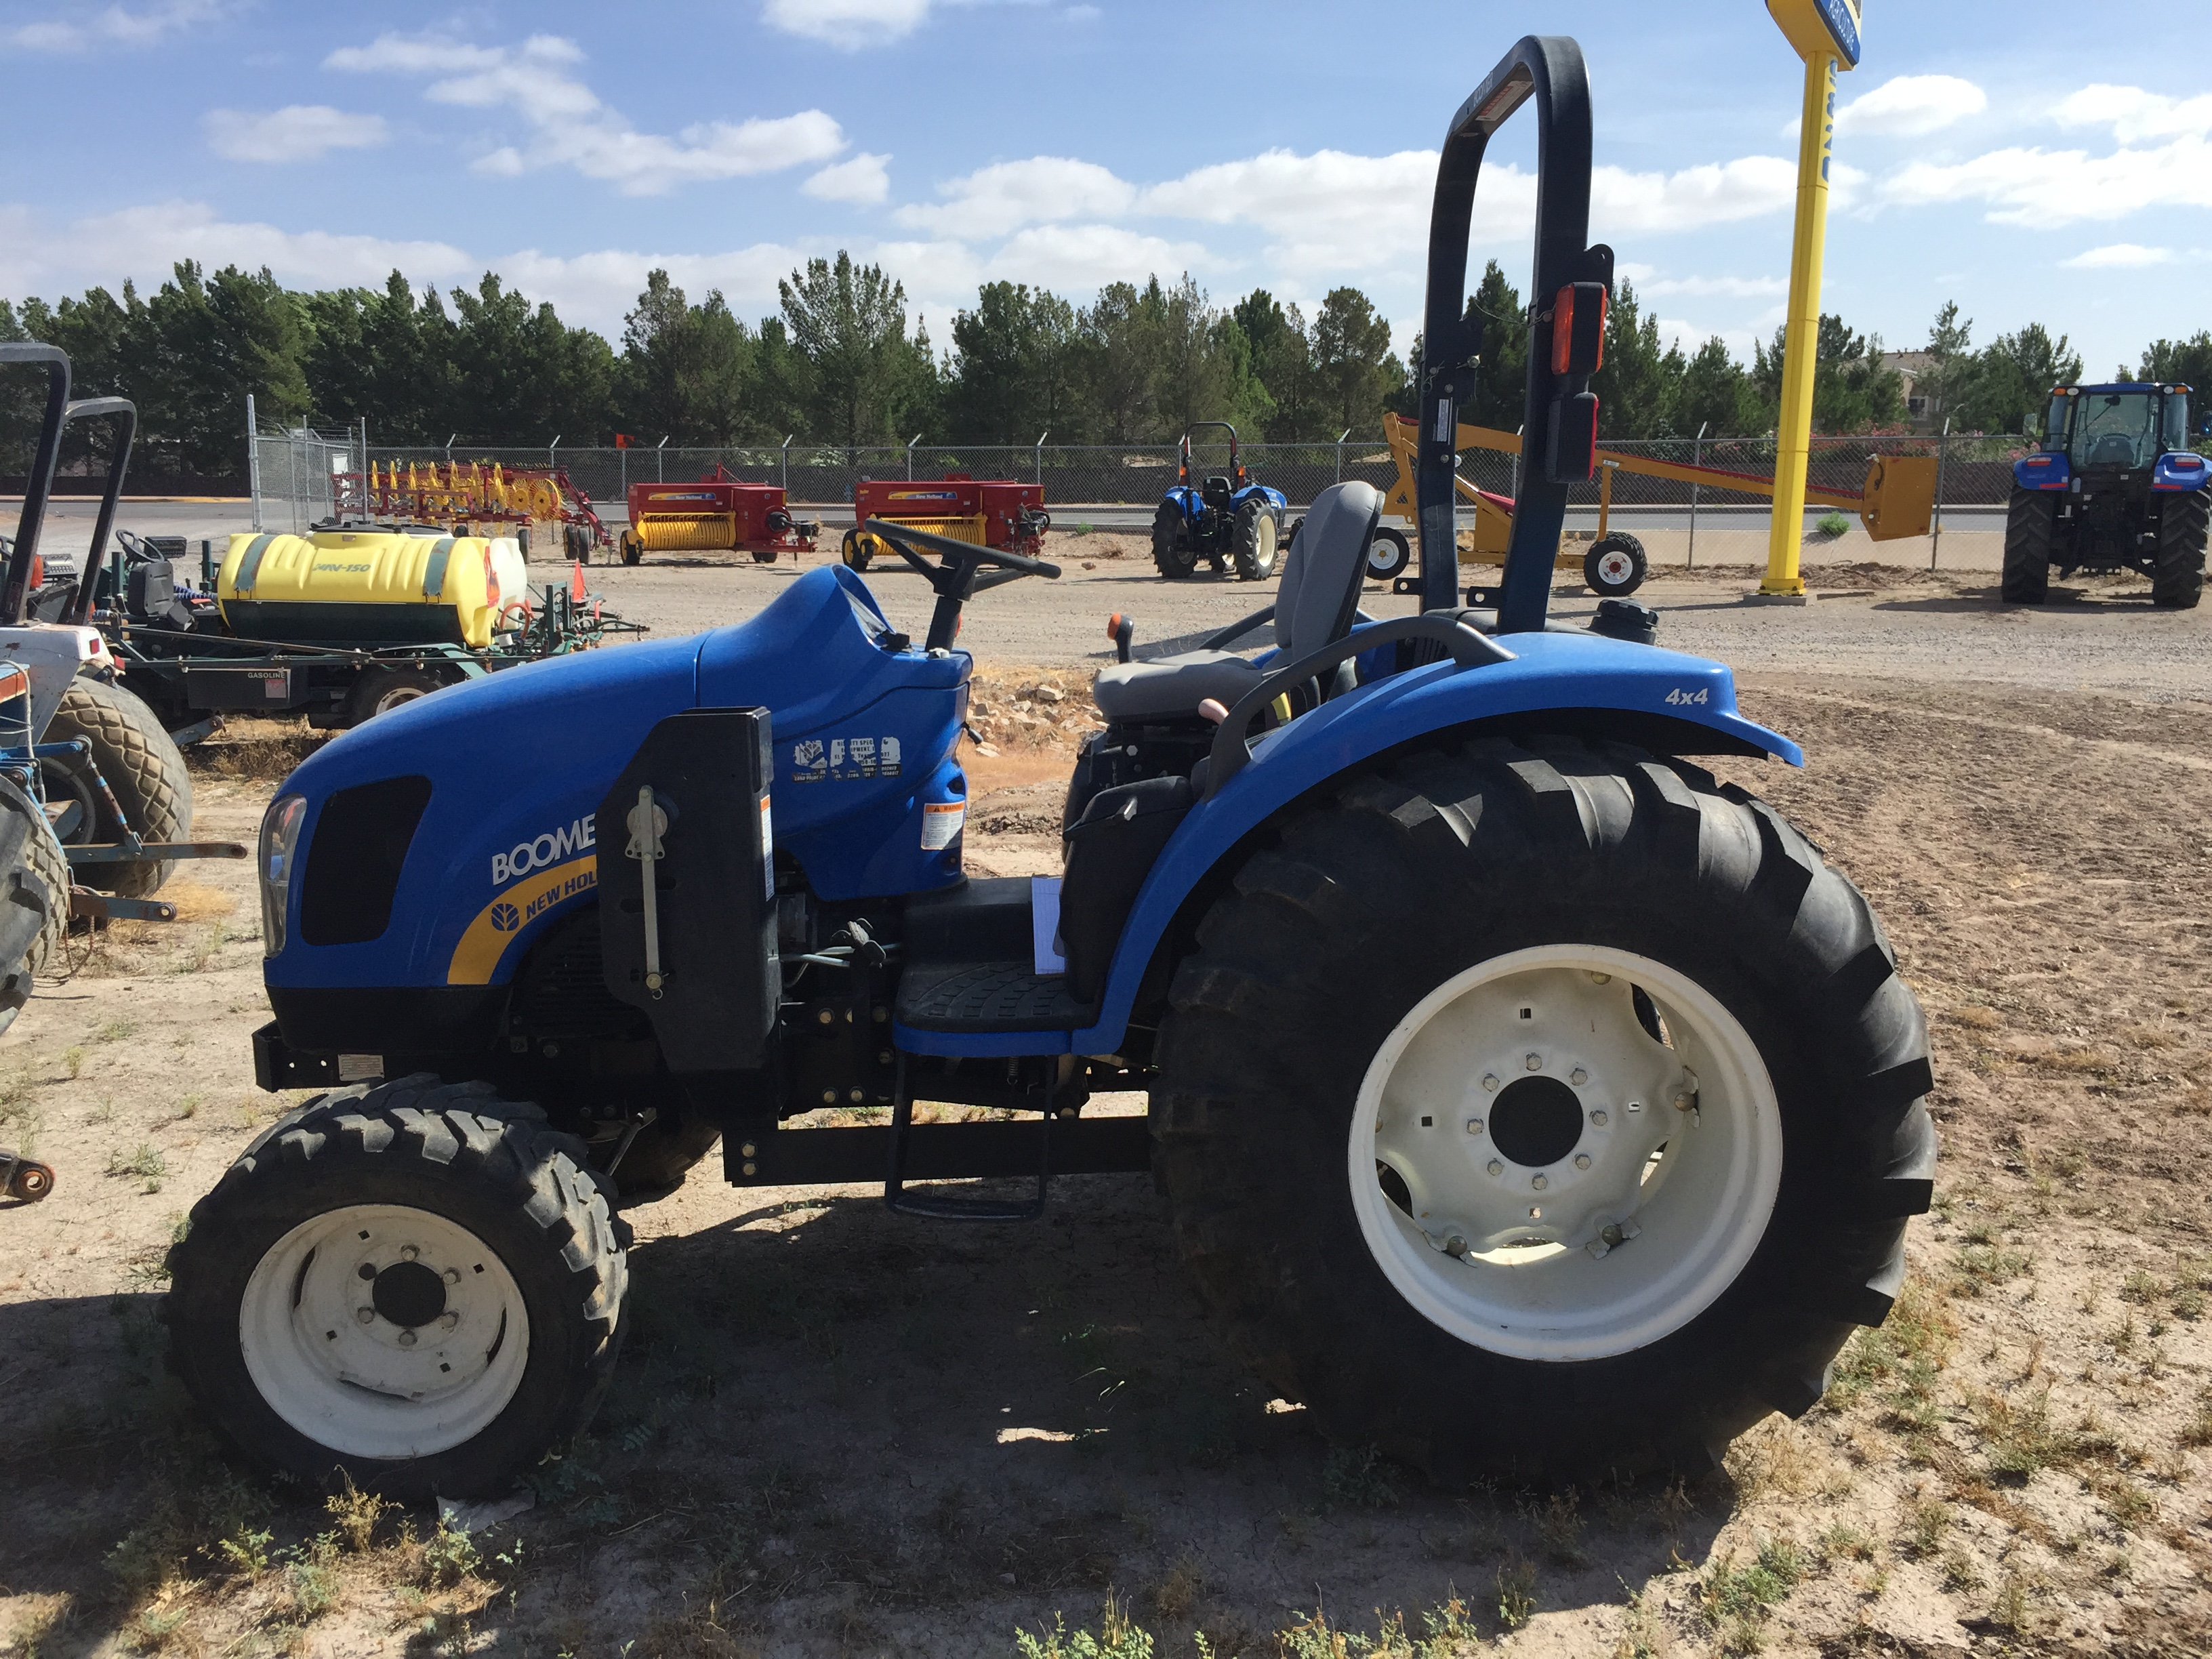 New Holland Tractor Specials : Product spotlight compact tractors—versatility in a small